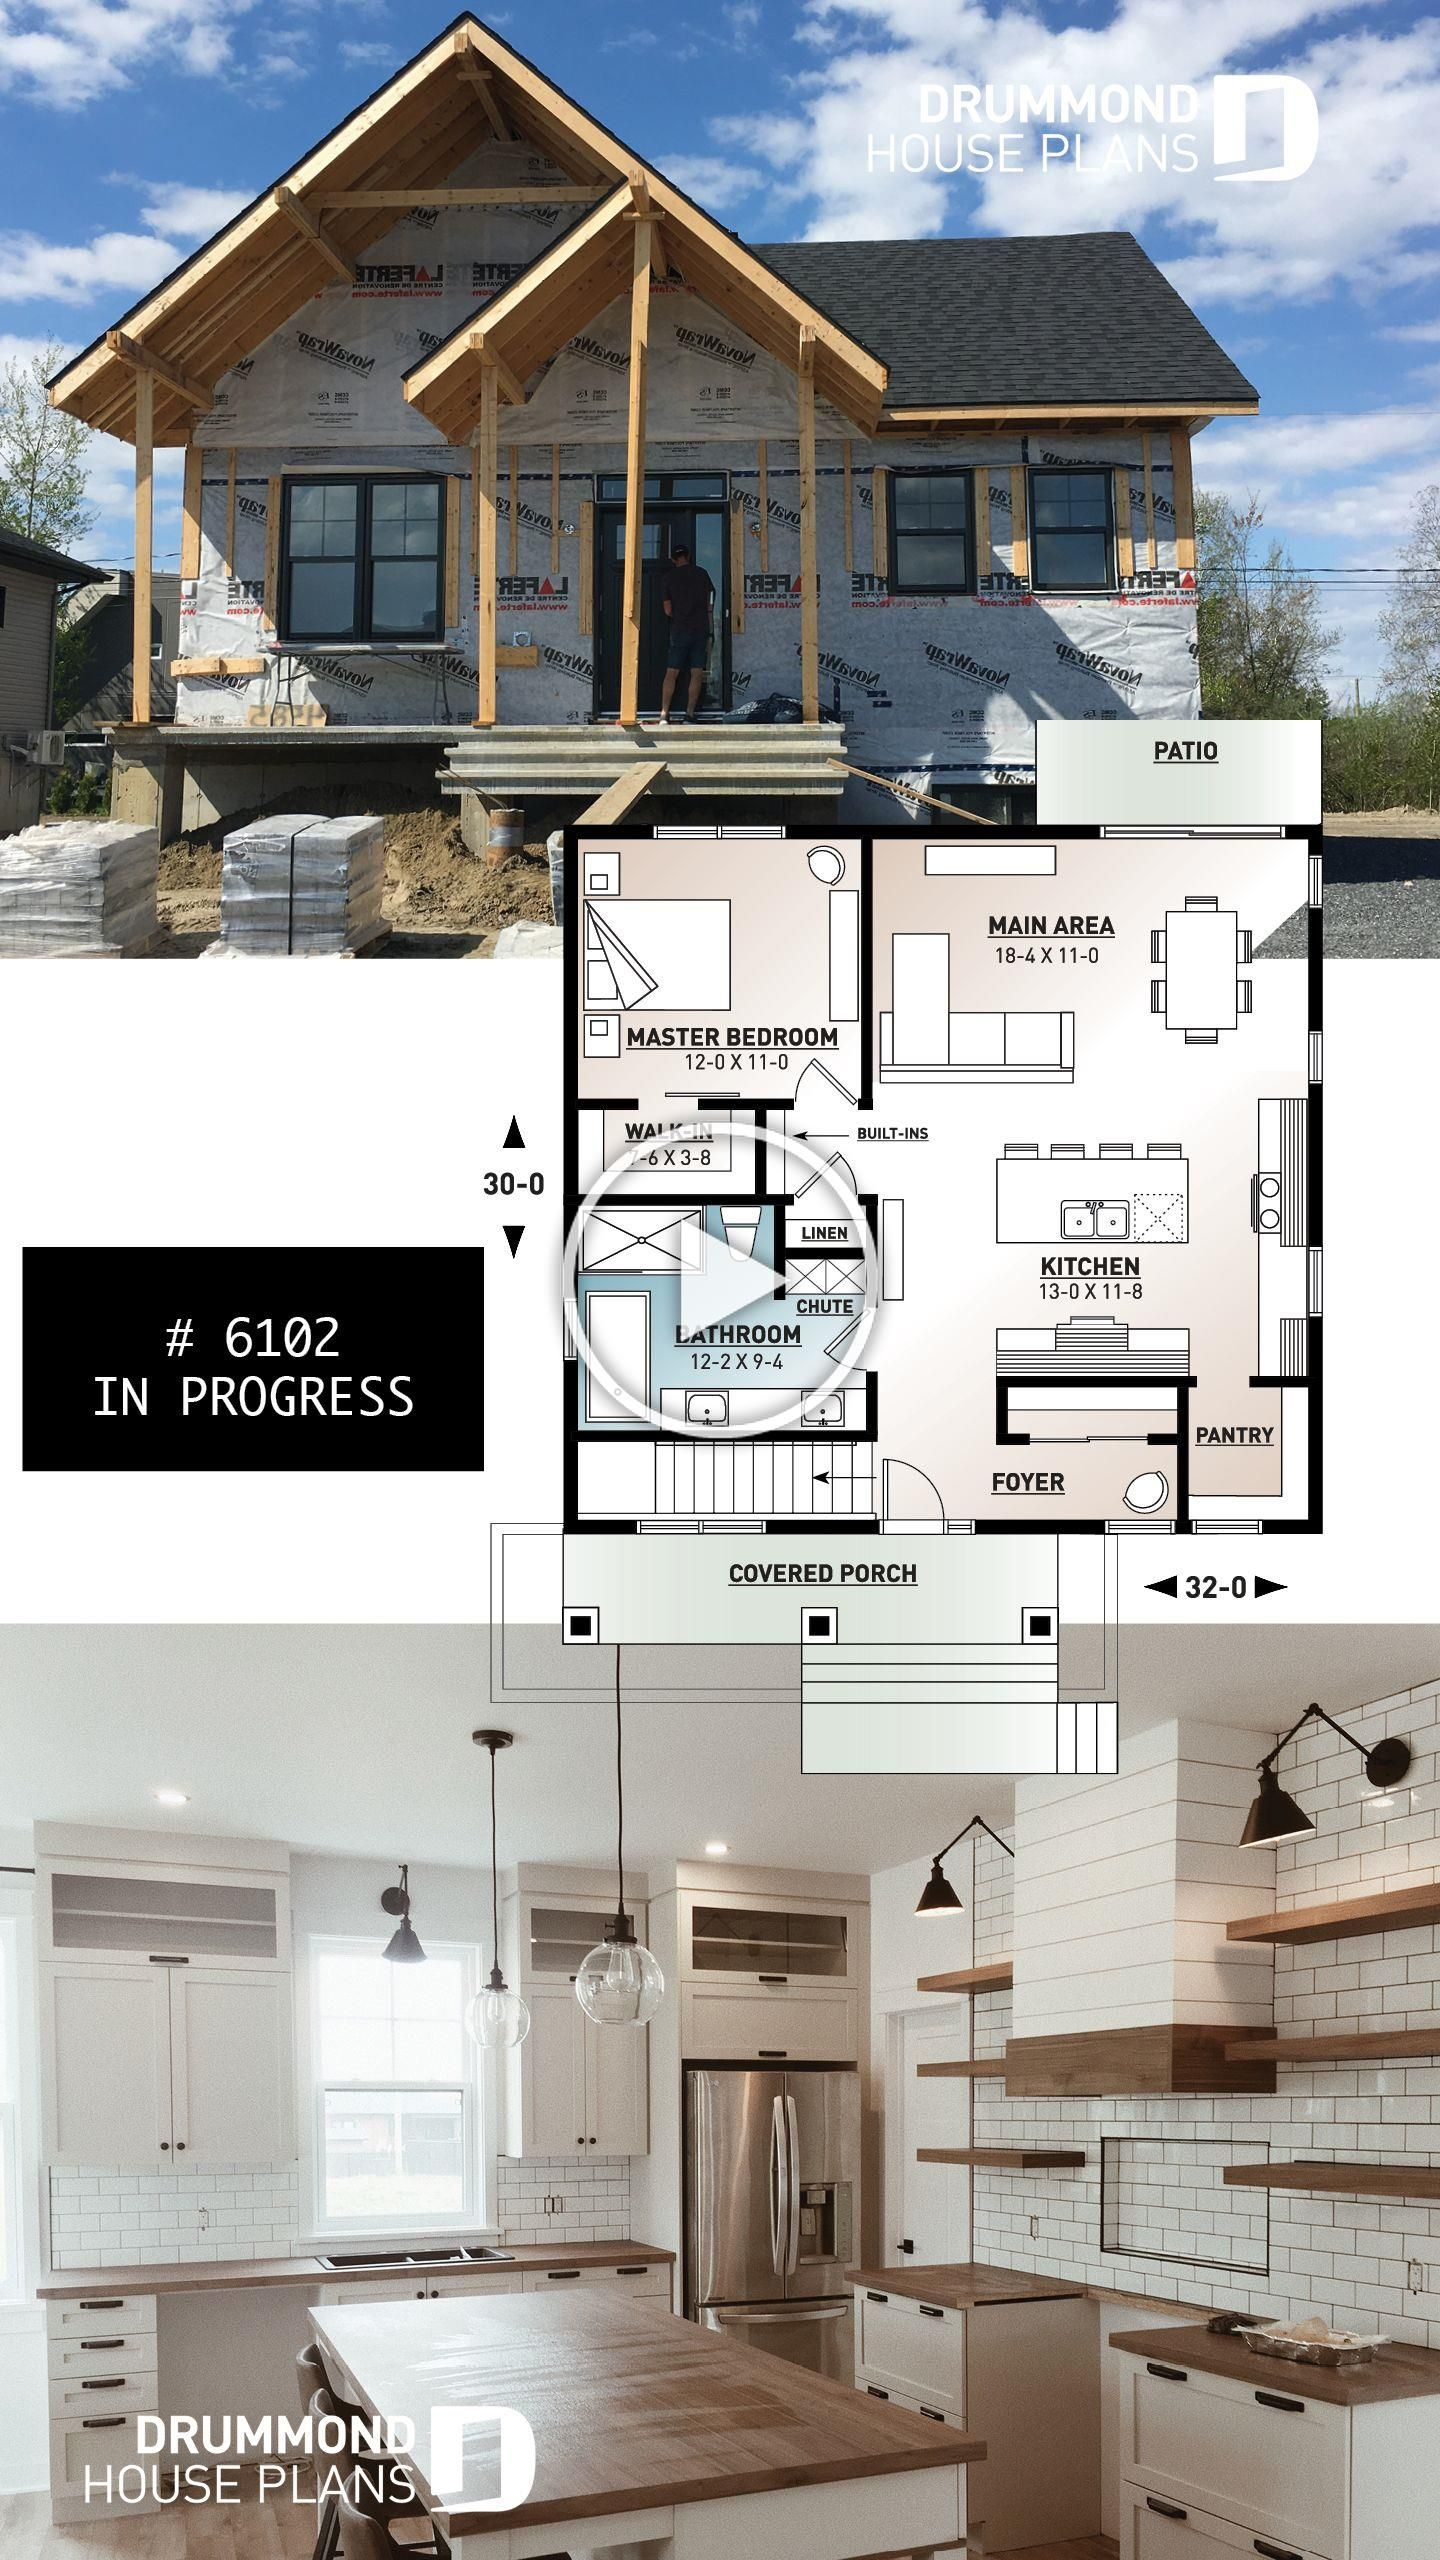 Modern Rustic Farmhouse Tiny Home Of 960 Sq Ft With Large Kitchen Pantry In Kitchen Master Bed Basement House Plans Small Farmhouse Plans Small House Design